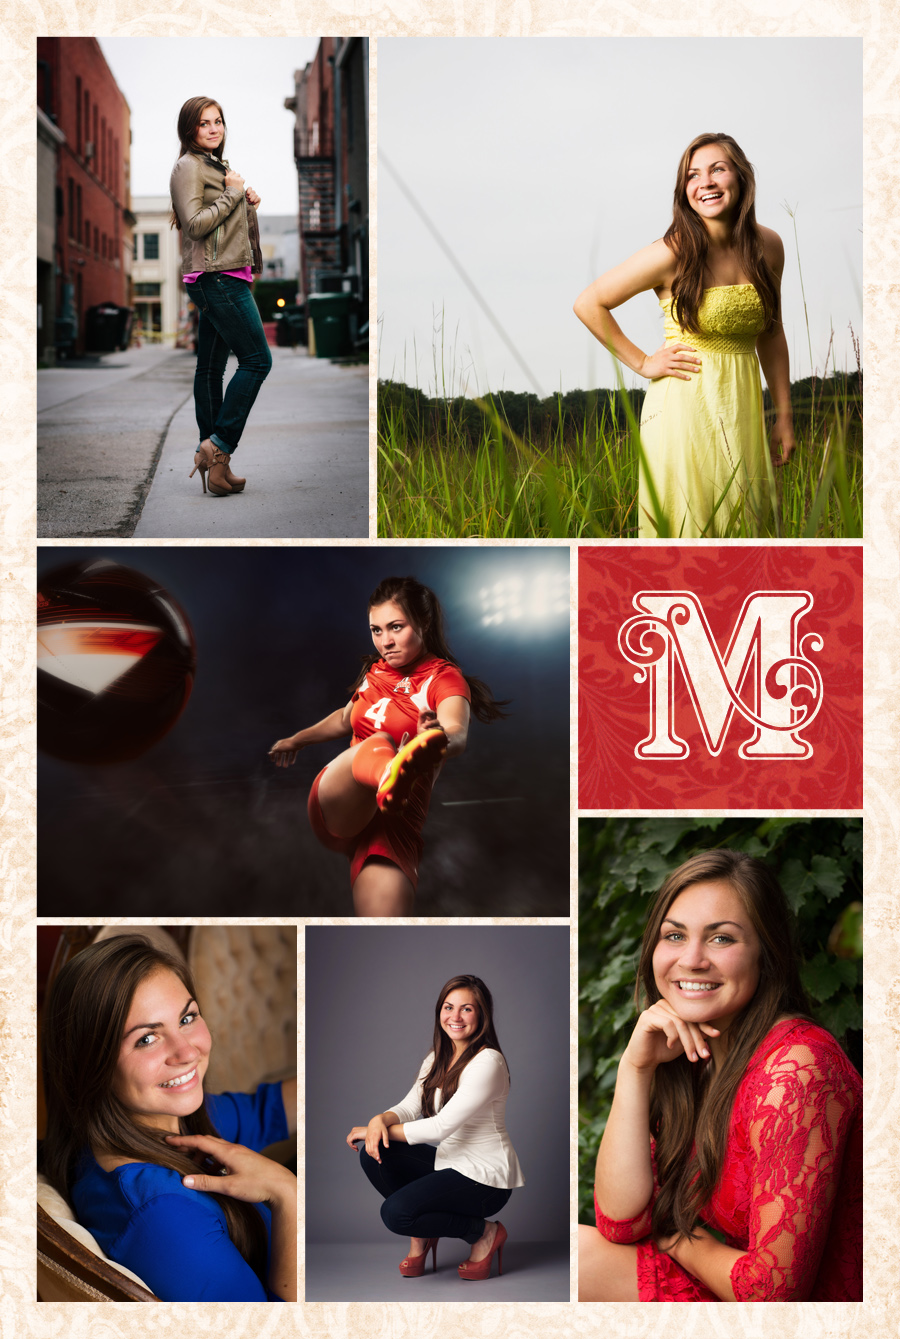 Senior portraits of Ames high graduate Stella Maris Strohman photographed in and around McClanahan Studio. Soccer night game composite, red dress, laughing in a prairie and looking fashionable on vintage furniture